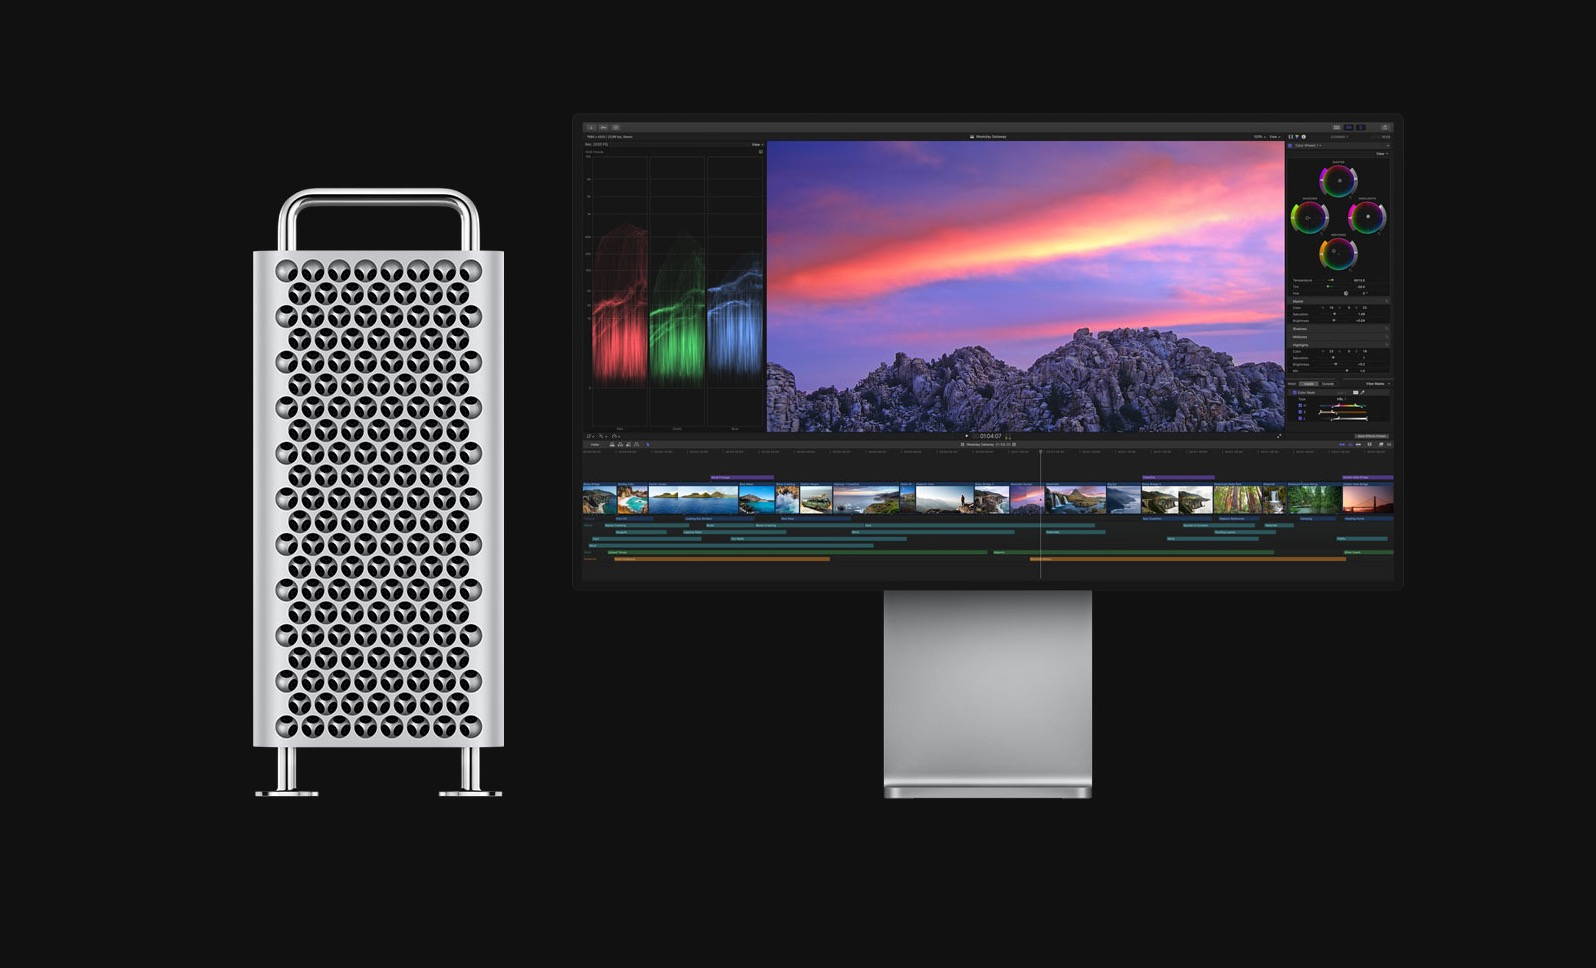 Final Cut Pro X 10 4 7 Arrives With Major Performance Boosts Gpu Selection And Pro Display Xdr Support Digital Photography Review